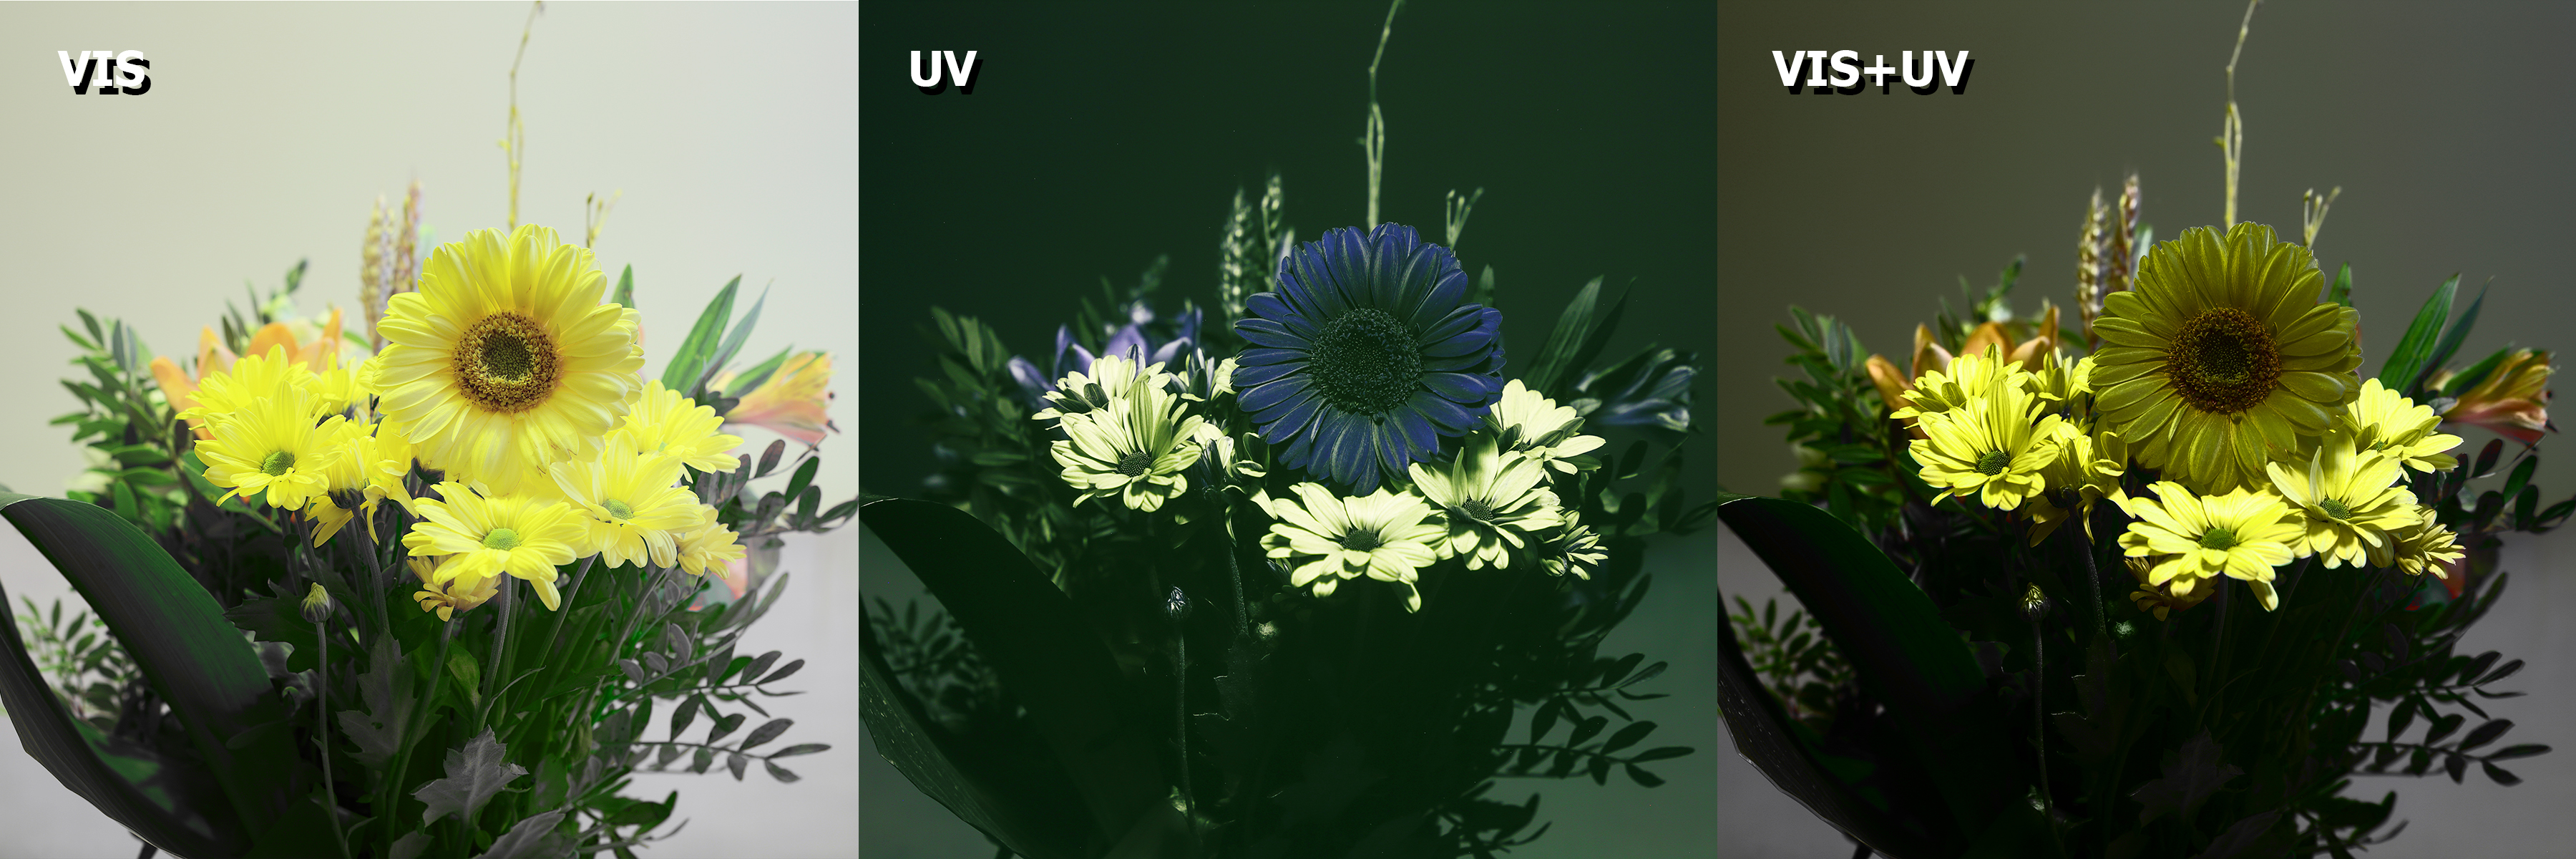 Getting Started with UV Photography - Kolary Vision